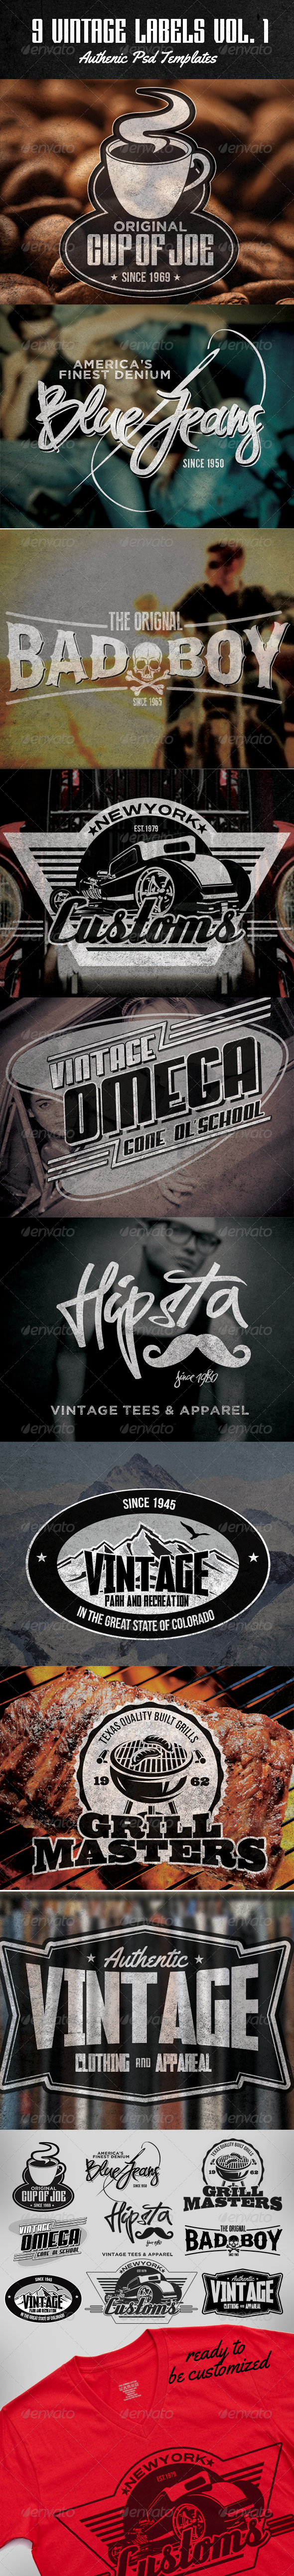 GraphicRiver OMG Vintage Labels Vol I 5788058